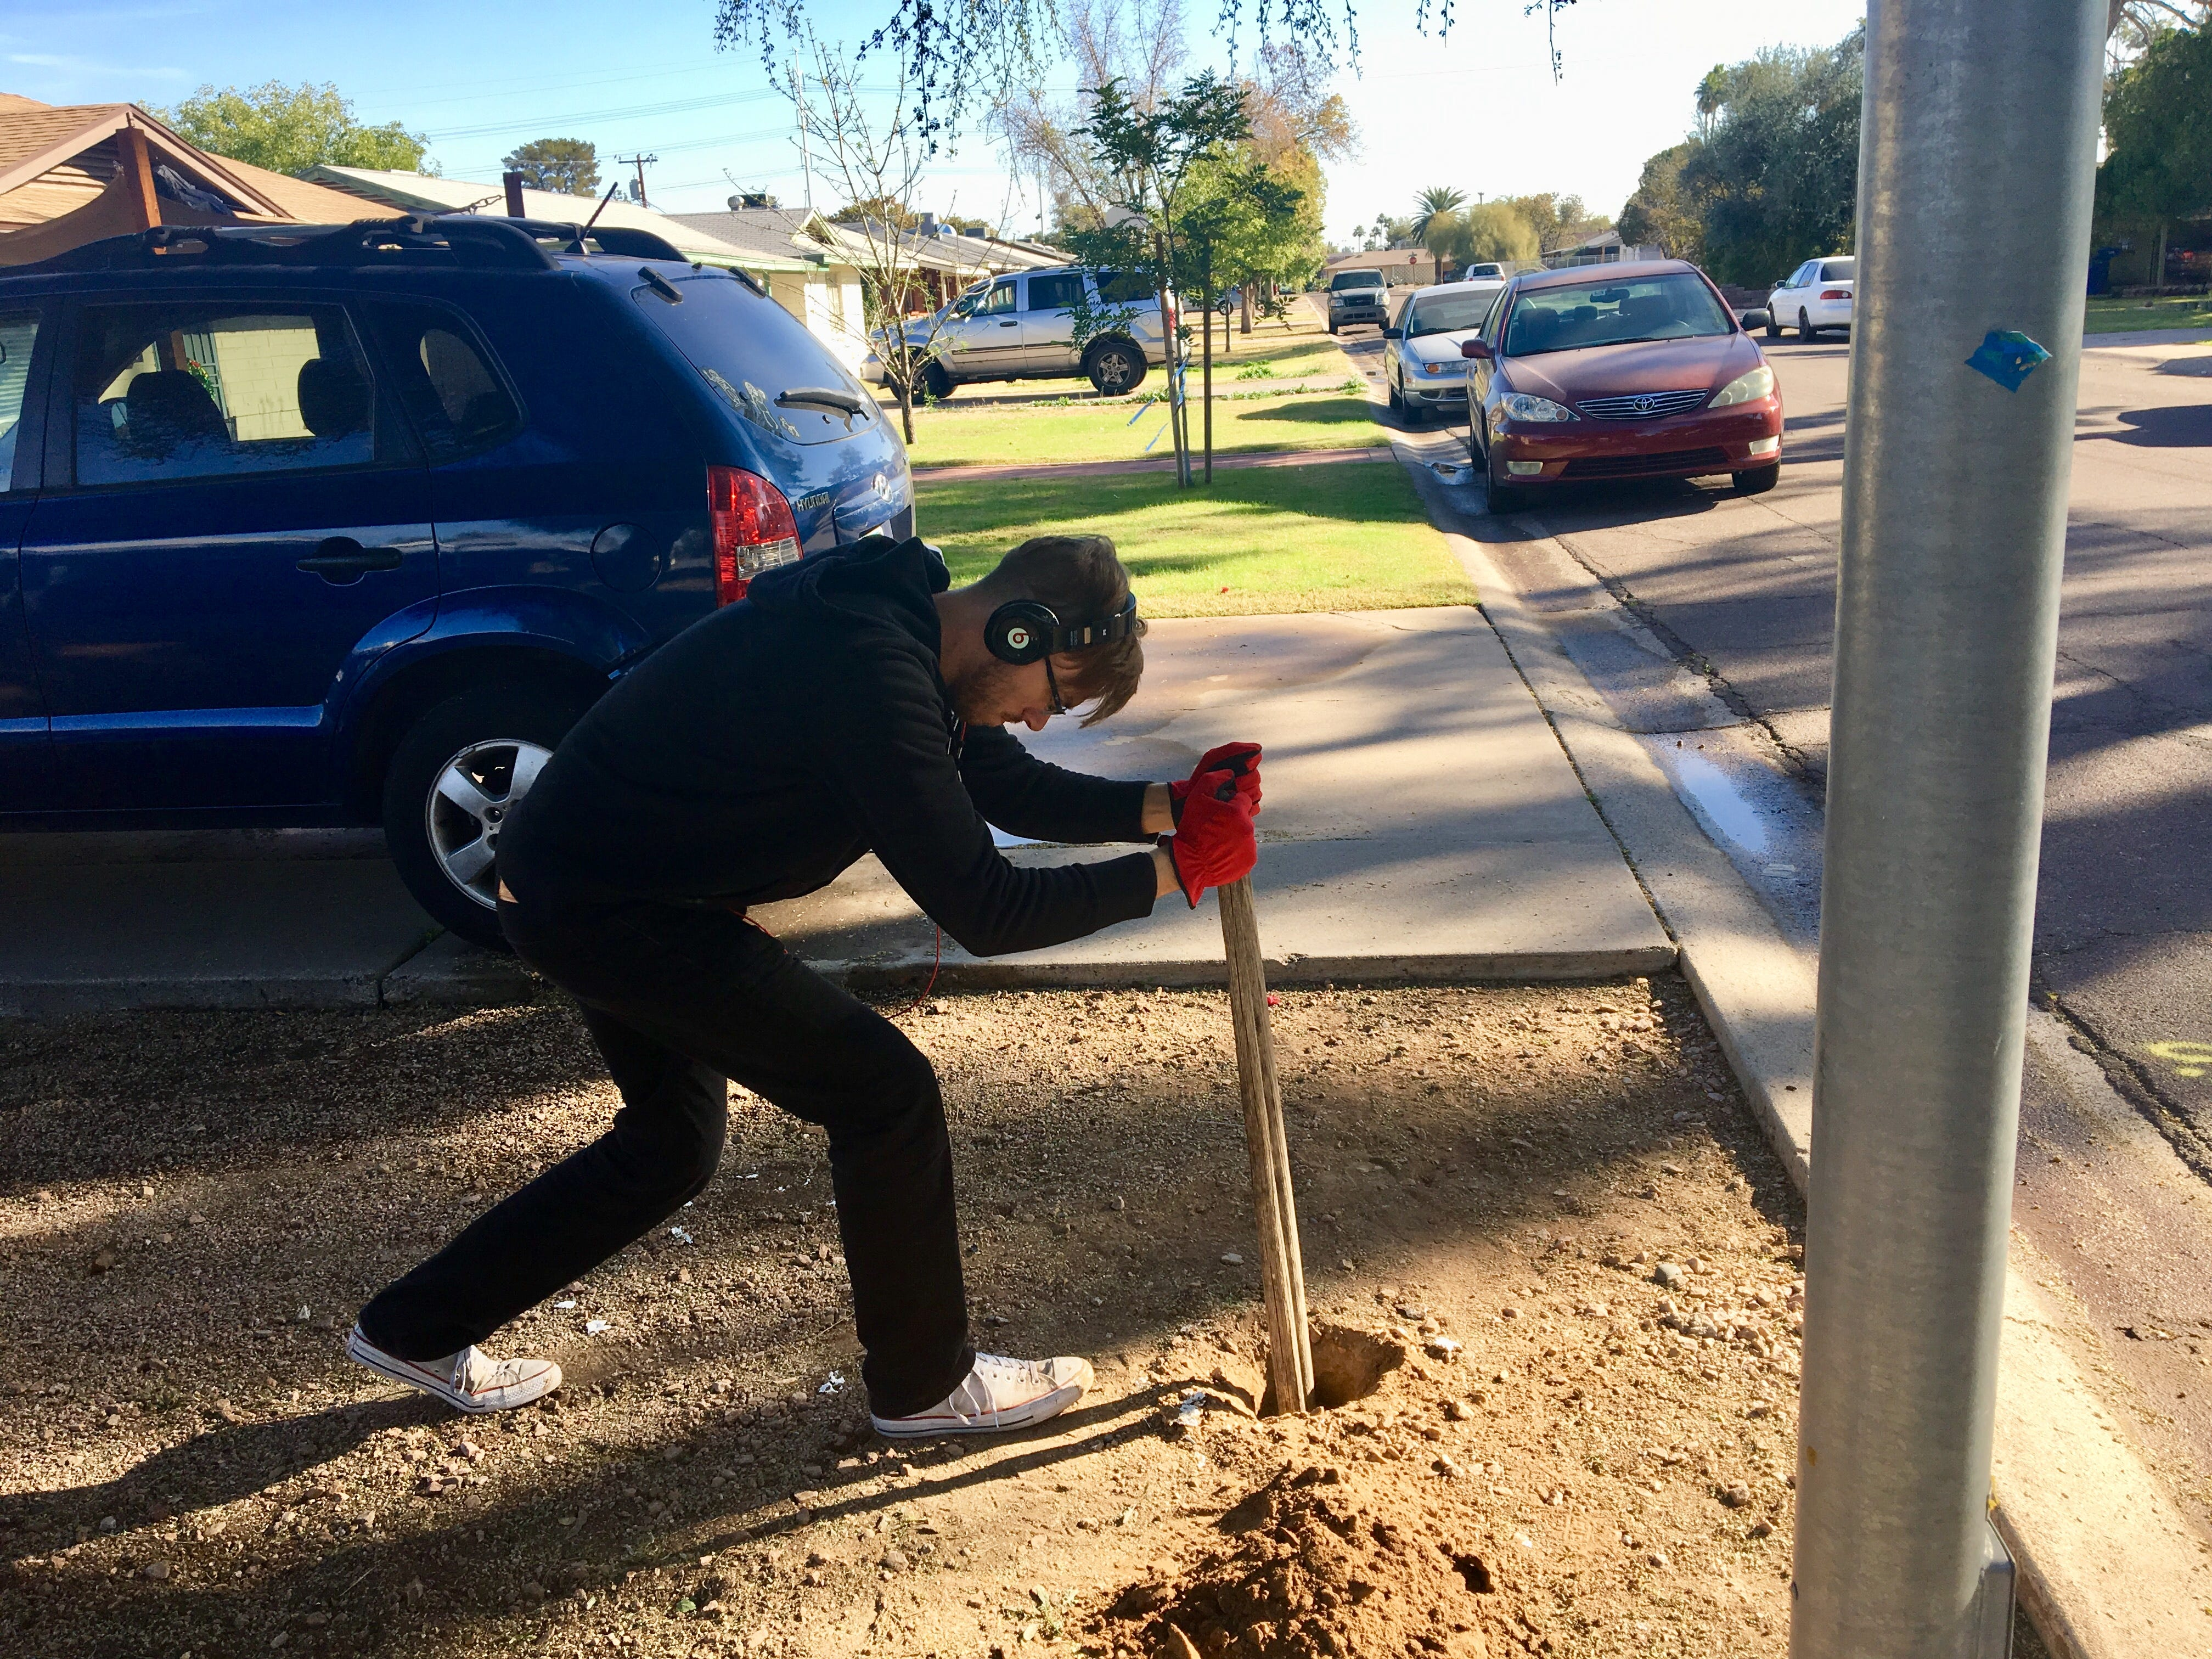 On Christmas Day, Sawyer Bland dug a hole for the post that would hold up a Little Free Library.